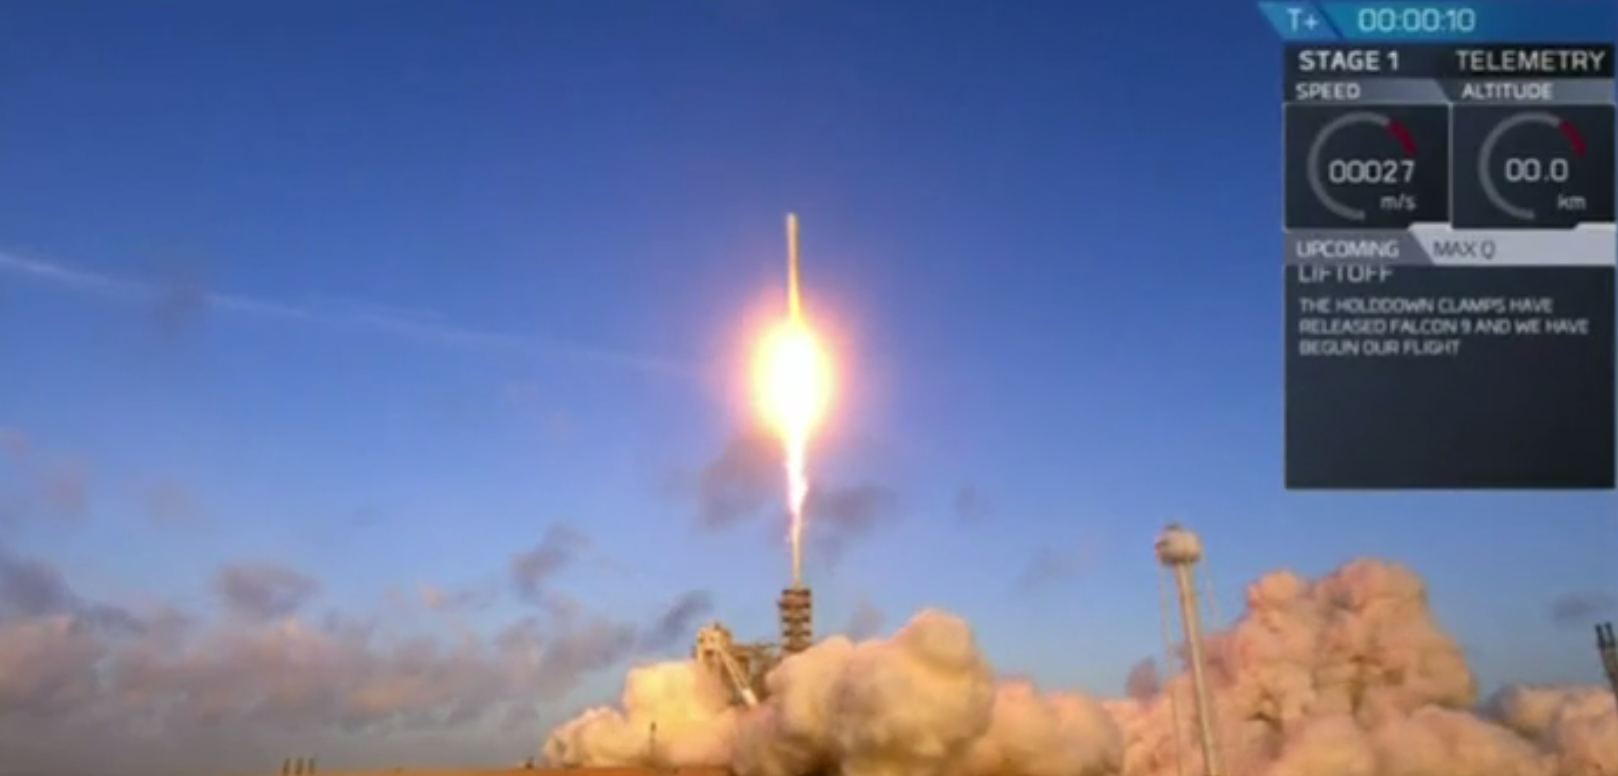 SpaceX's Falcon 9 rocket blasts off from the Kennedy Space Center in Florida on Monday.